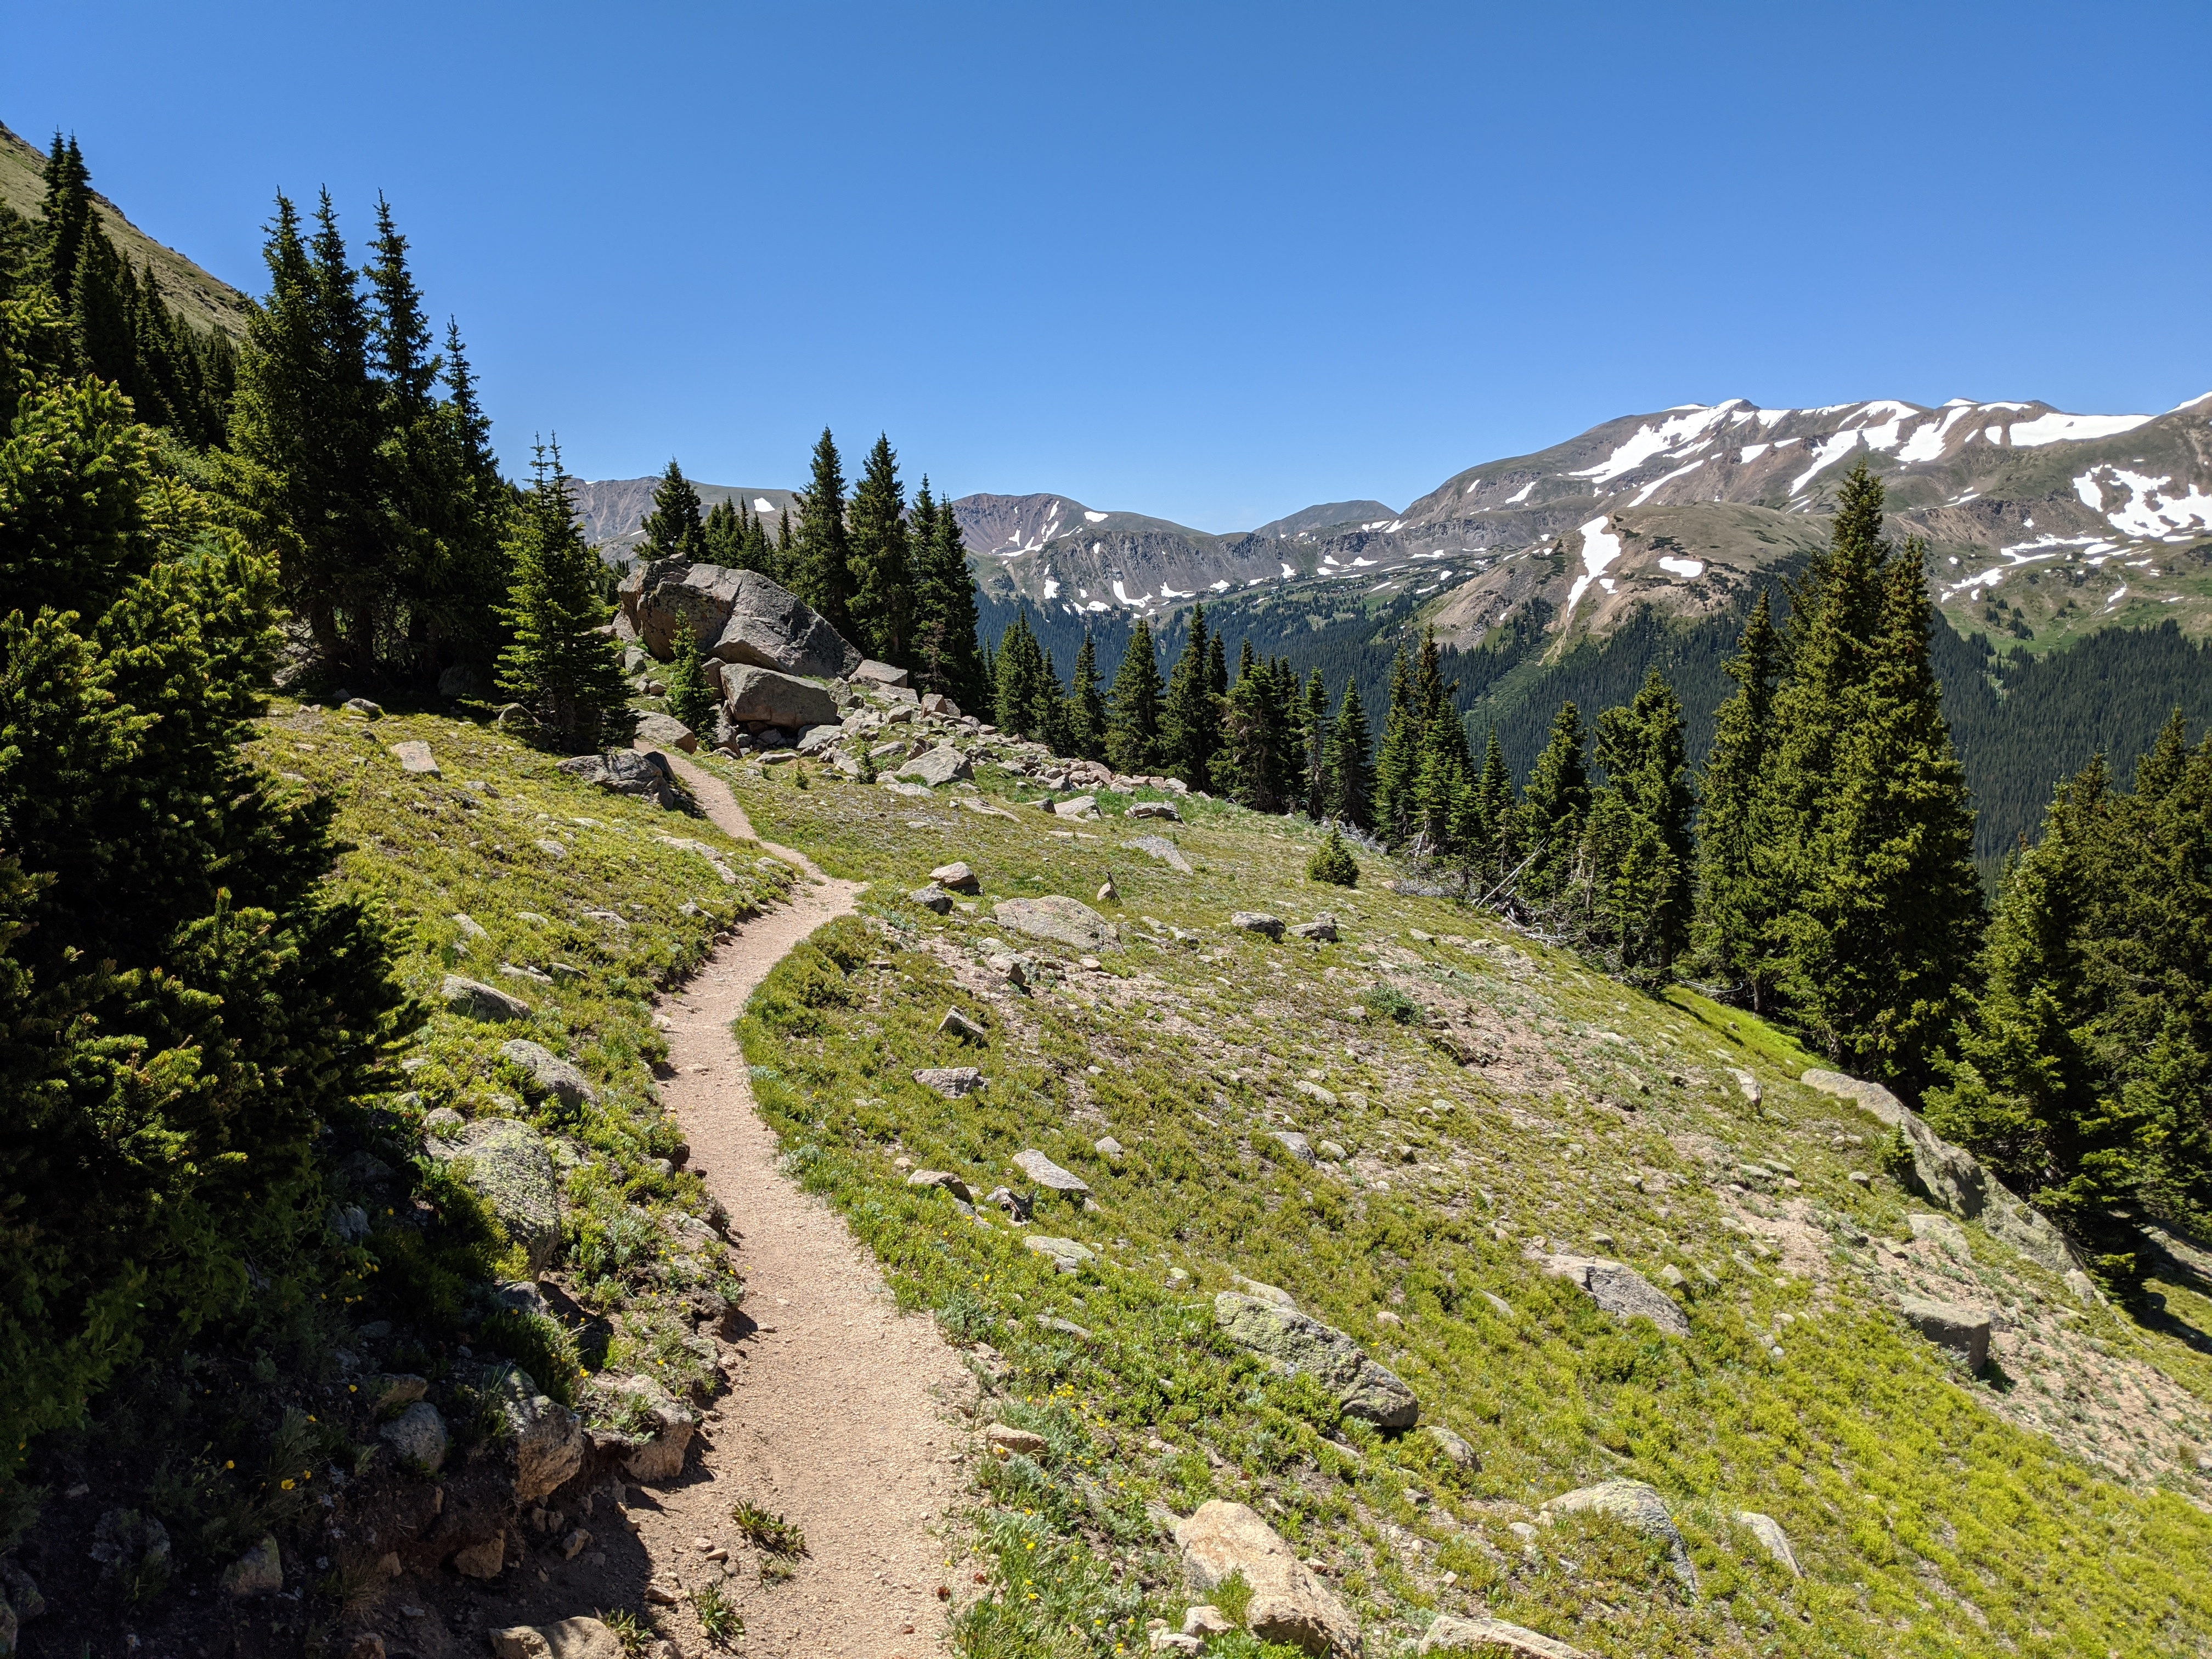 The descent along the Continental Divide Trail from Vasquez Peak.